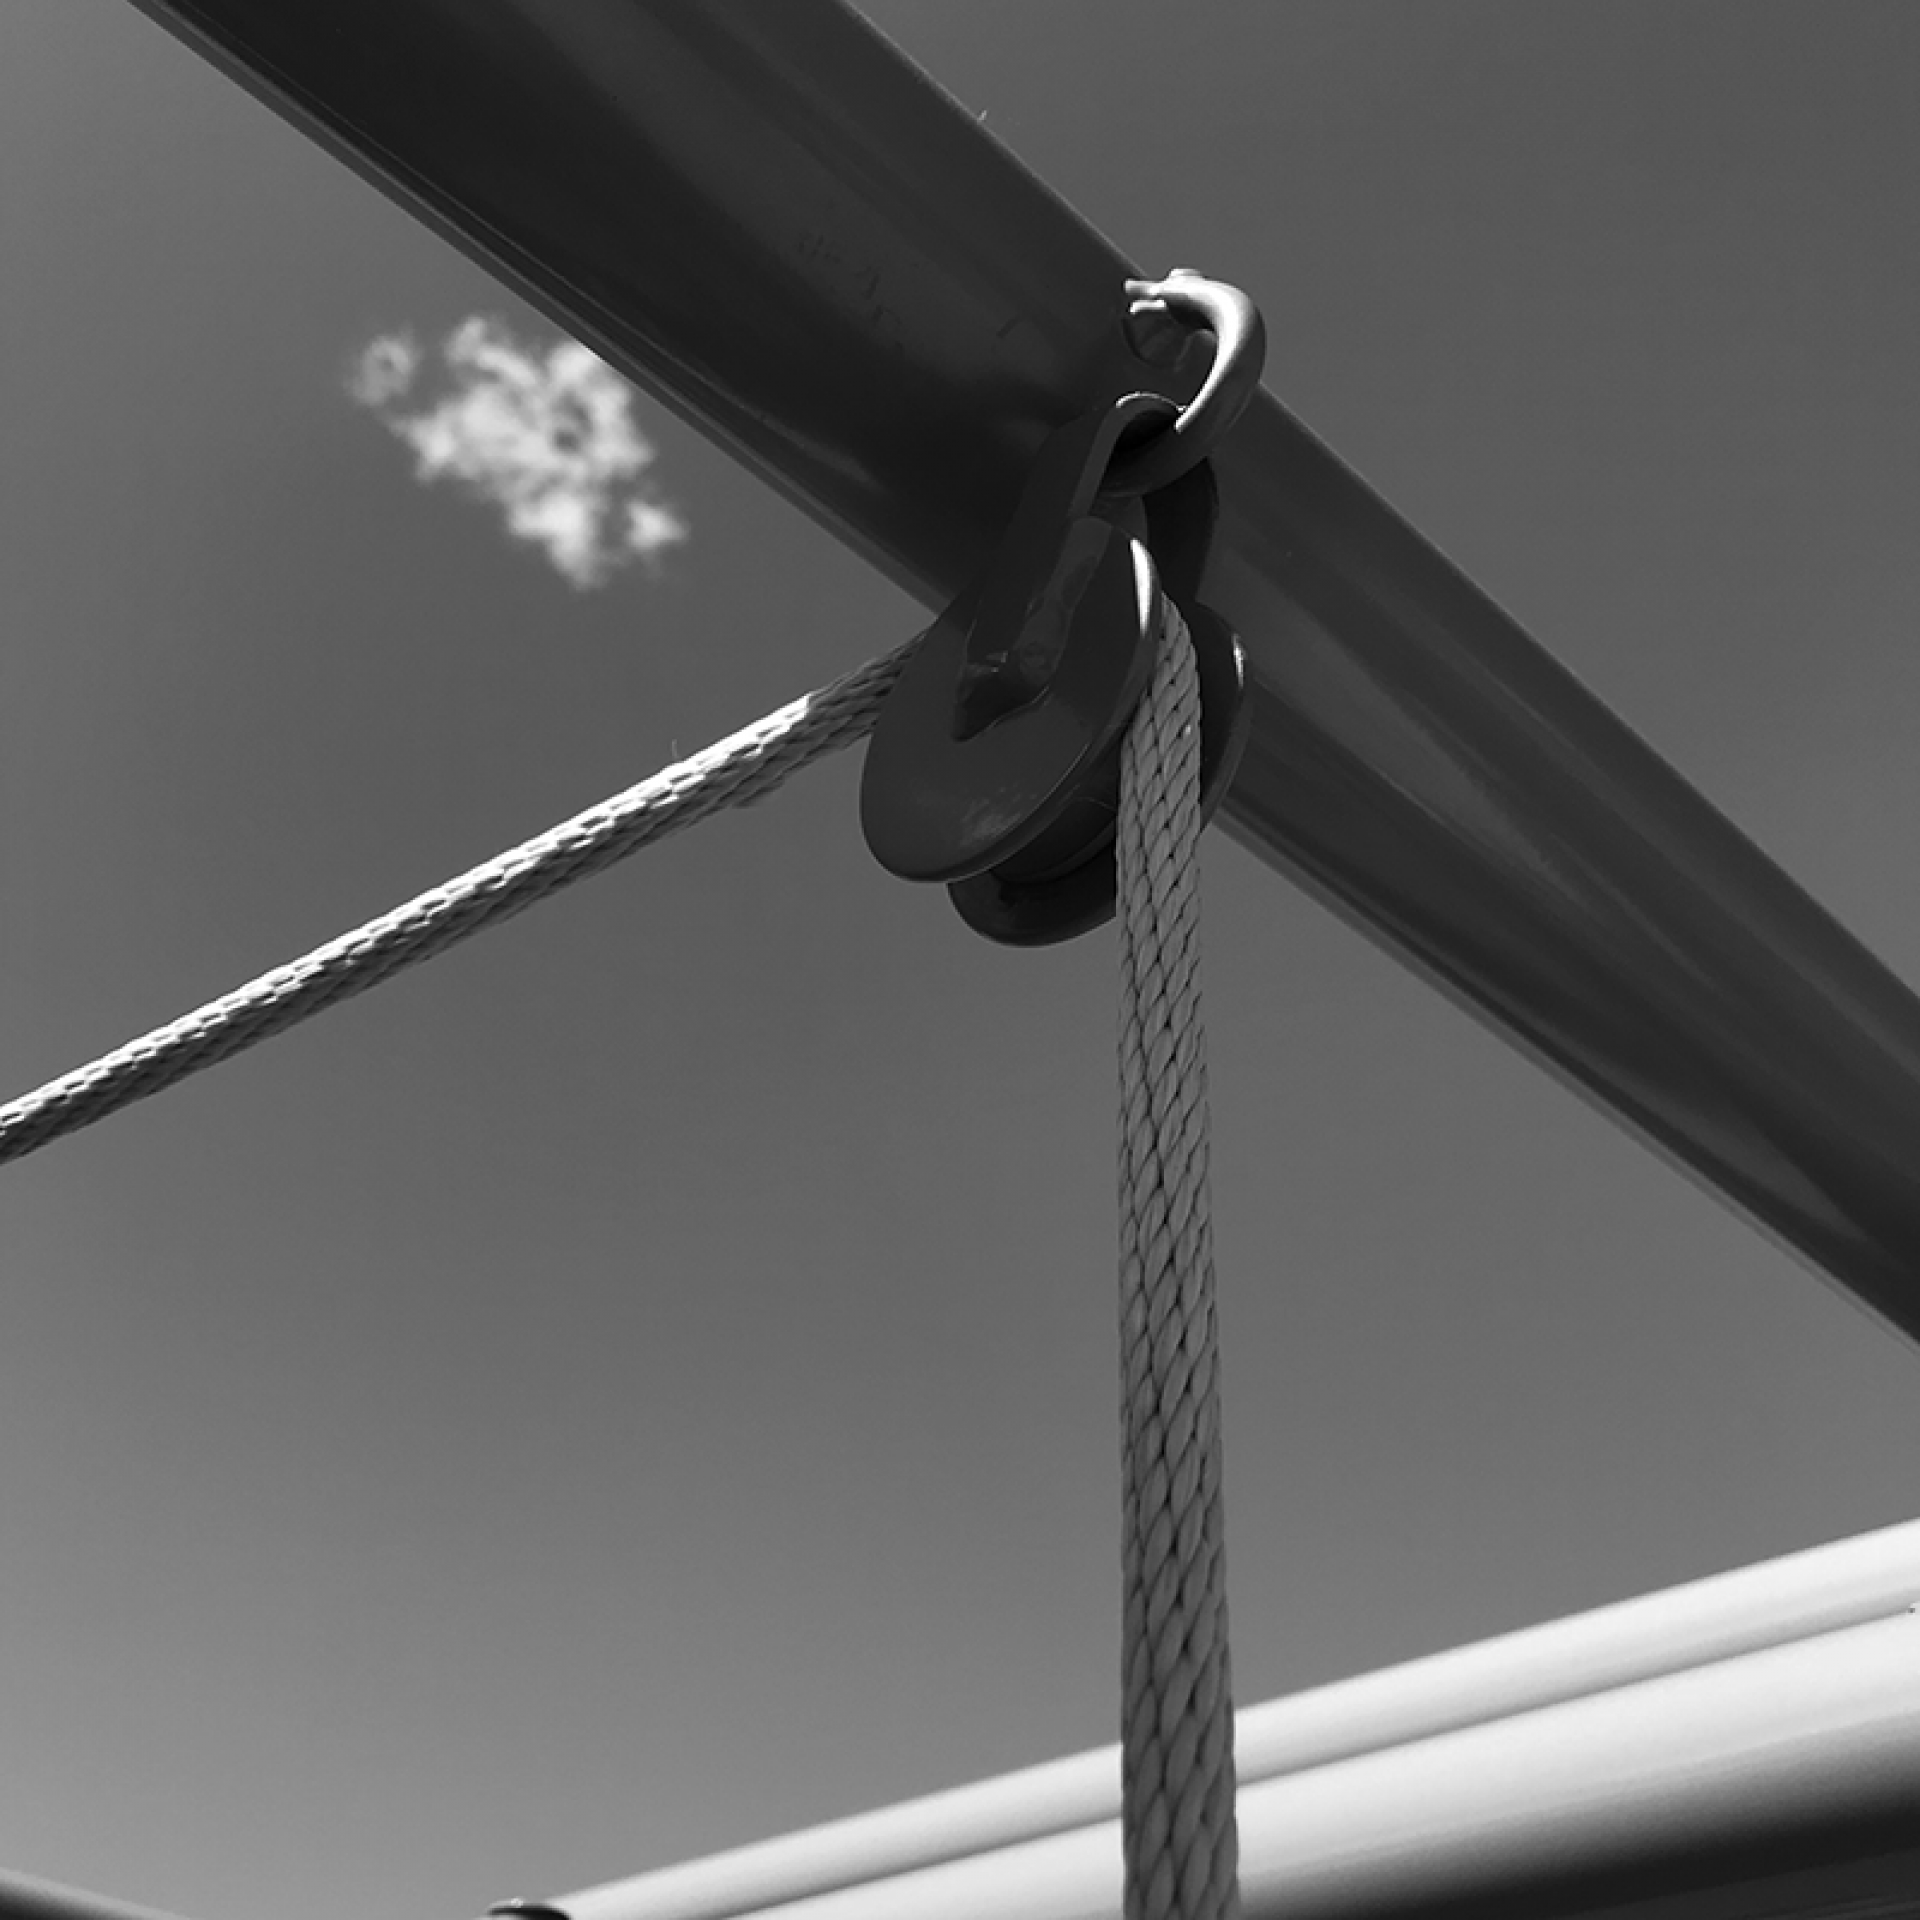 Image of cables on a cattle chute